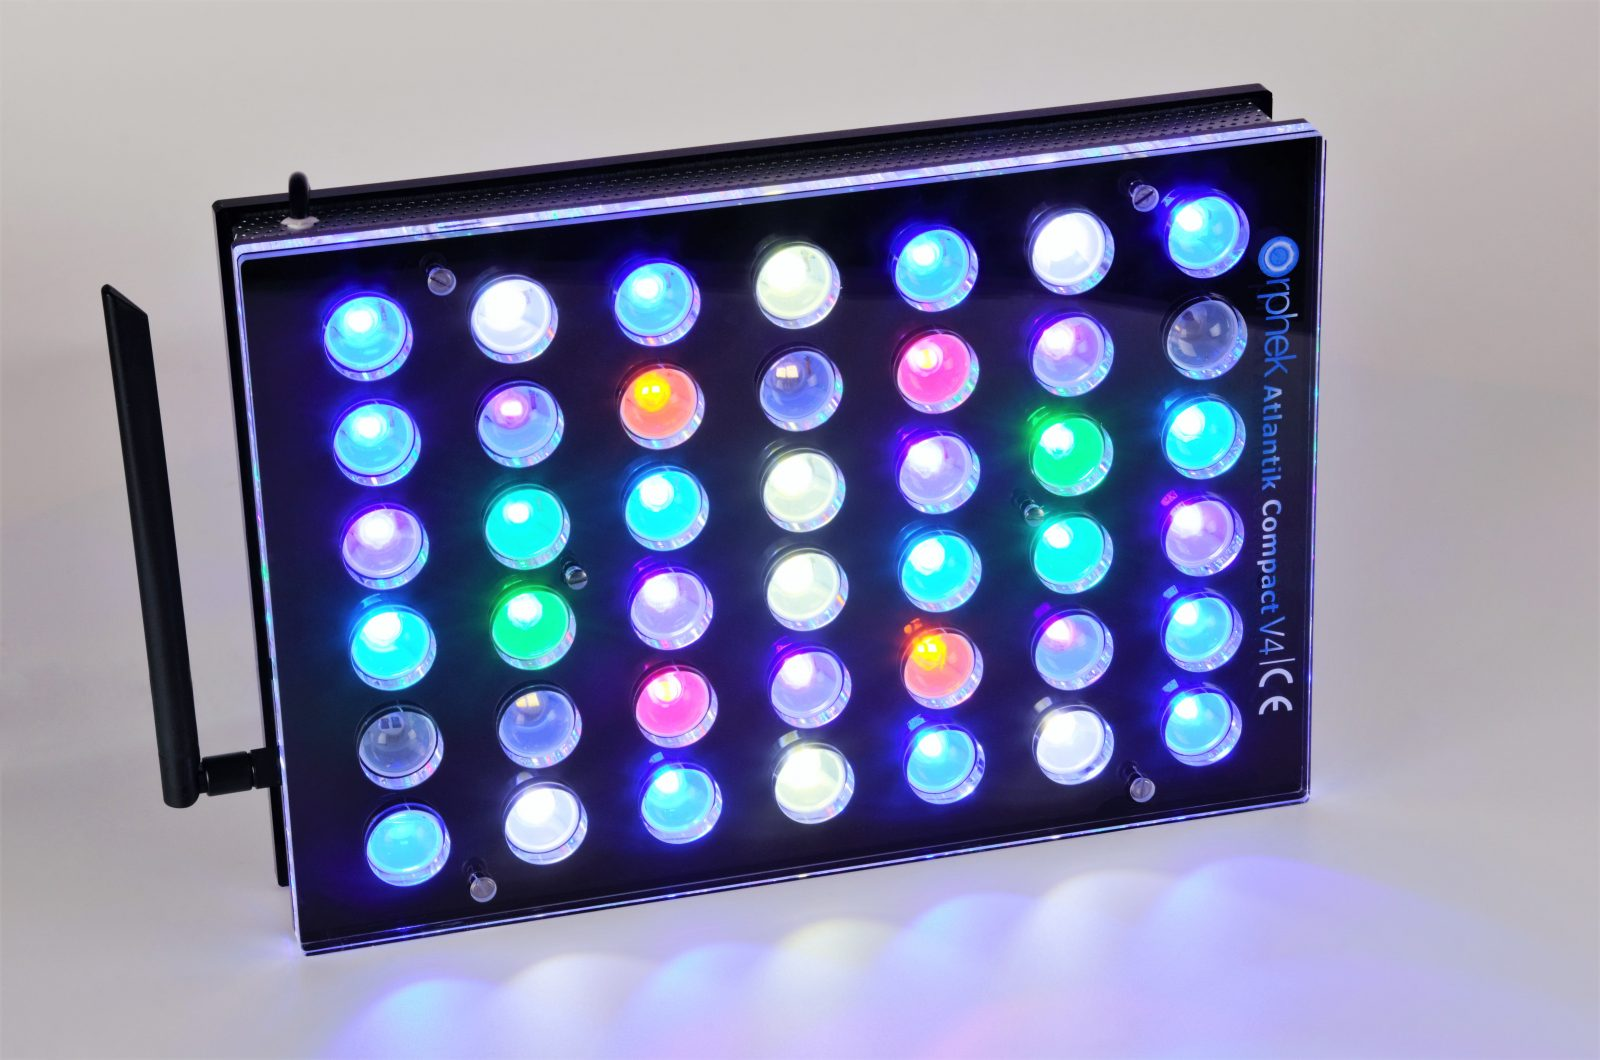 Orphek-Aquarium-LED-Lighting-Atlantik -Compact-V4-light -on - channel 1 + 2 + 3 + 4